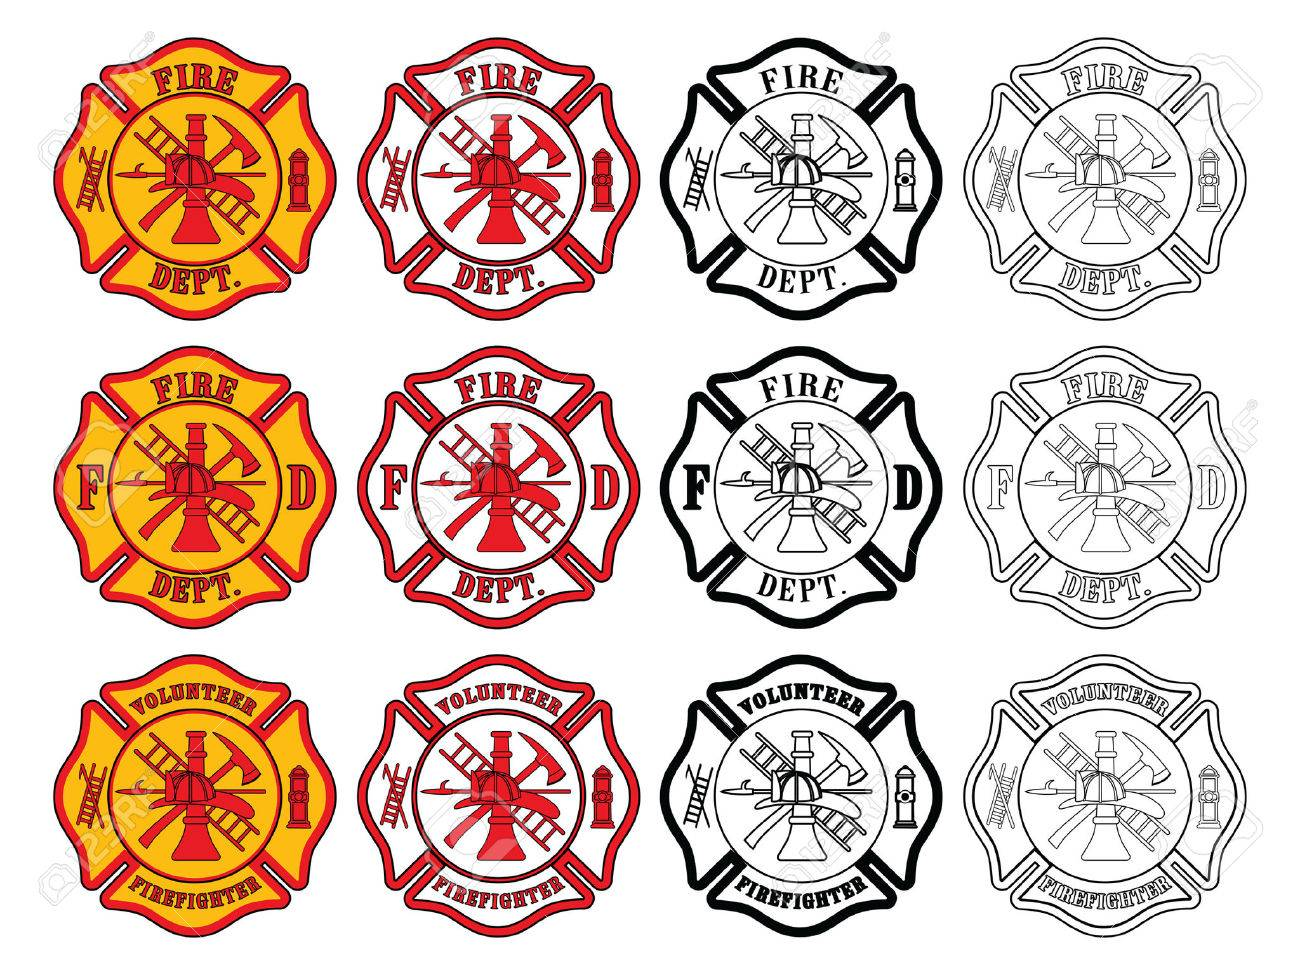 530 maltese cross stock vector illustration and royalty free firefighter cross symbol is an illustration of three slightly different firefighter biocorpaavc